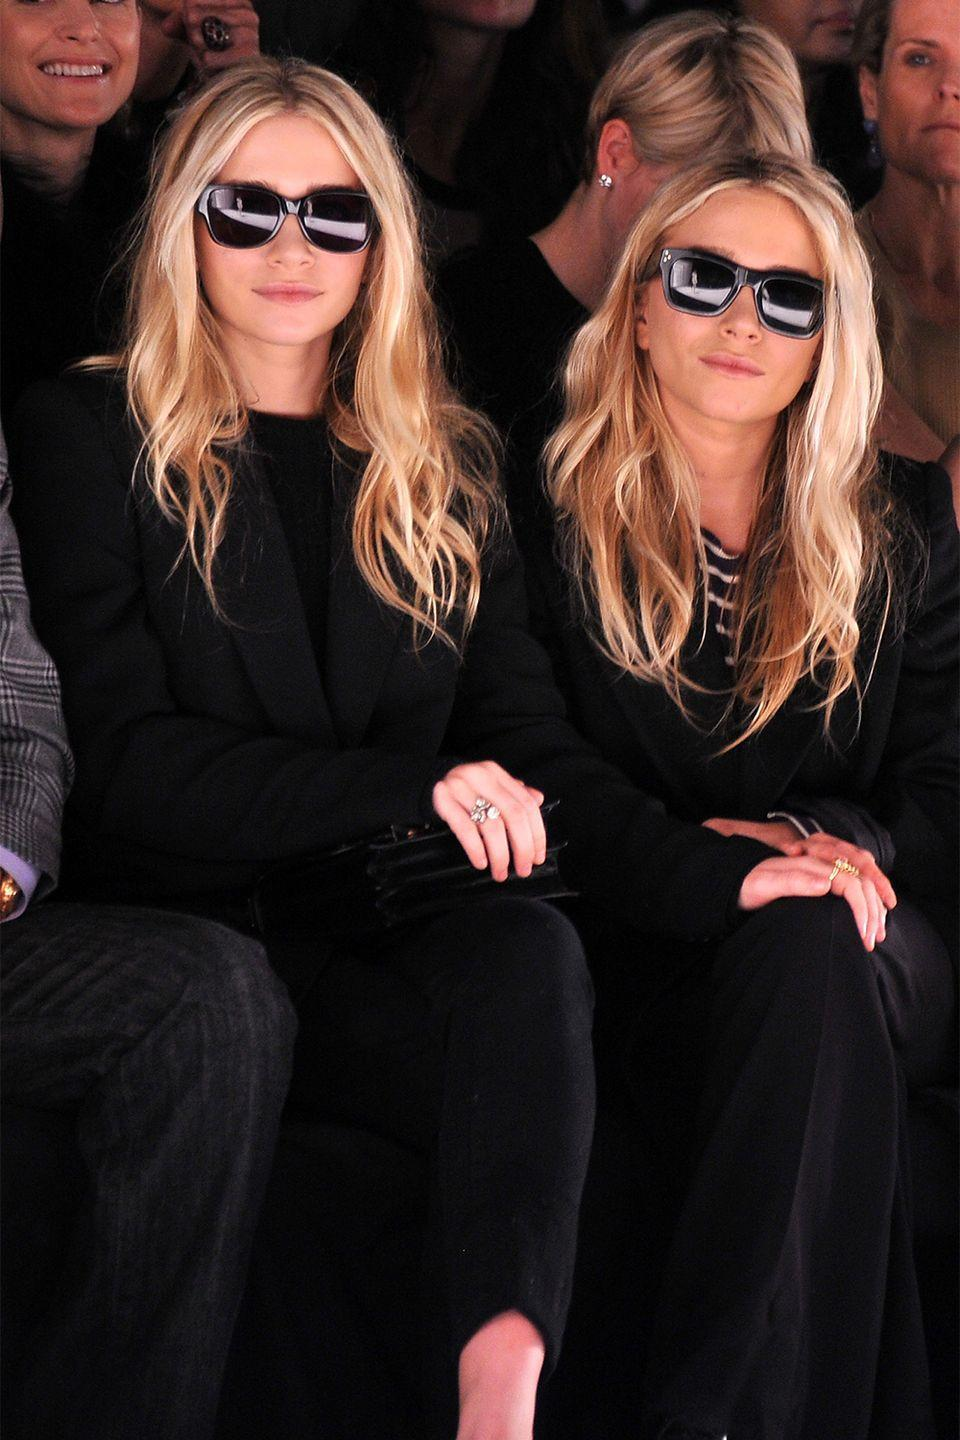 """<p>It takes two to go as fashion's favorite twins. All you need are some oversized clothes (preferably in black), black sunglasses, and Starbucks cups in hand. </p><p><strong>Get the look: Loewe</strong> butterfly anagram titted sunglasses shiny black, $330, <a href=""""https://go.redirectingat.com?id=74968X1596630&url=https%3A%2F%2Fshop.harpersbazaar.com%2Fdesigners%2Floewe%2Fbutterfly-anagram-fitted-sunglasses-shiny-black-68484.html&sref=https%3A%2F%2Fwww.harpersbazaar.com%2Ffashion%2Ftrends%2Fg2339%2Ffashionable-halloween-costume-ideas%2F"""" rel=""""nofollow noopener"""" target=""""_blank"""" data-ylk=""""slk:shopbazaar.com"""" class=""""link rapid-noclick-resp"""">shopbazaar.com</a>. </p><p><a class=""""link rapid-noclick-resp"""" href=""""https://go.redirectingat.com?id=74968X1596630&url=https%3A%2F%2Fshop.harpersbazaar.com%2Fdesigners%2Floewe%2Fbutterfly-anagram-fitted-sunglasses-shiny-black-68484.html&sref=https%3A%2F%2Fwww.harpersbazaar.com%2Ffashion%2Ftrends%2Fg2339%2Ffashionable-halloween-costume-ideas%2F"""" rel=""""nofollow noopener"""" target=""""_blank"""" data-ylk=""""slk:SHOP"""">SHOP</a> </p>"""